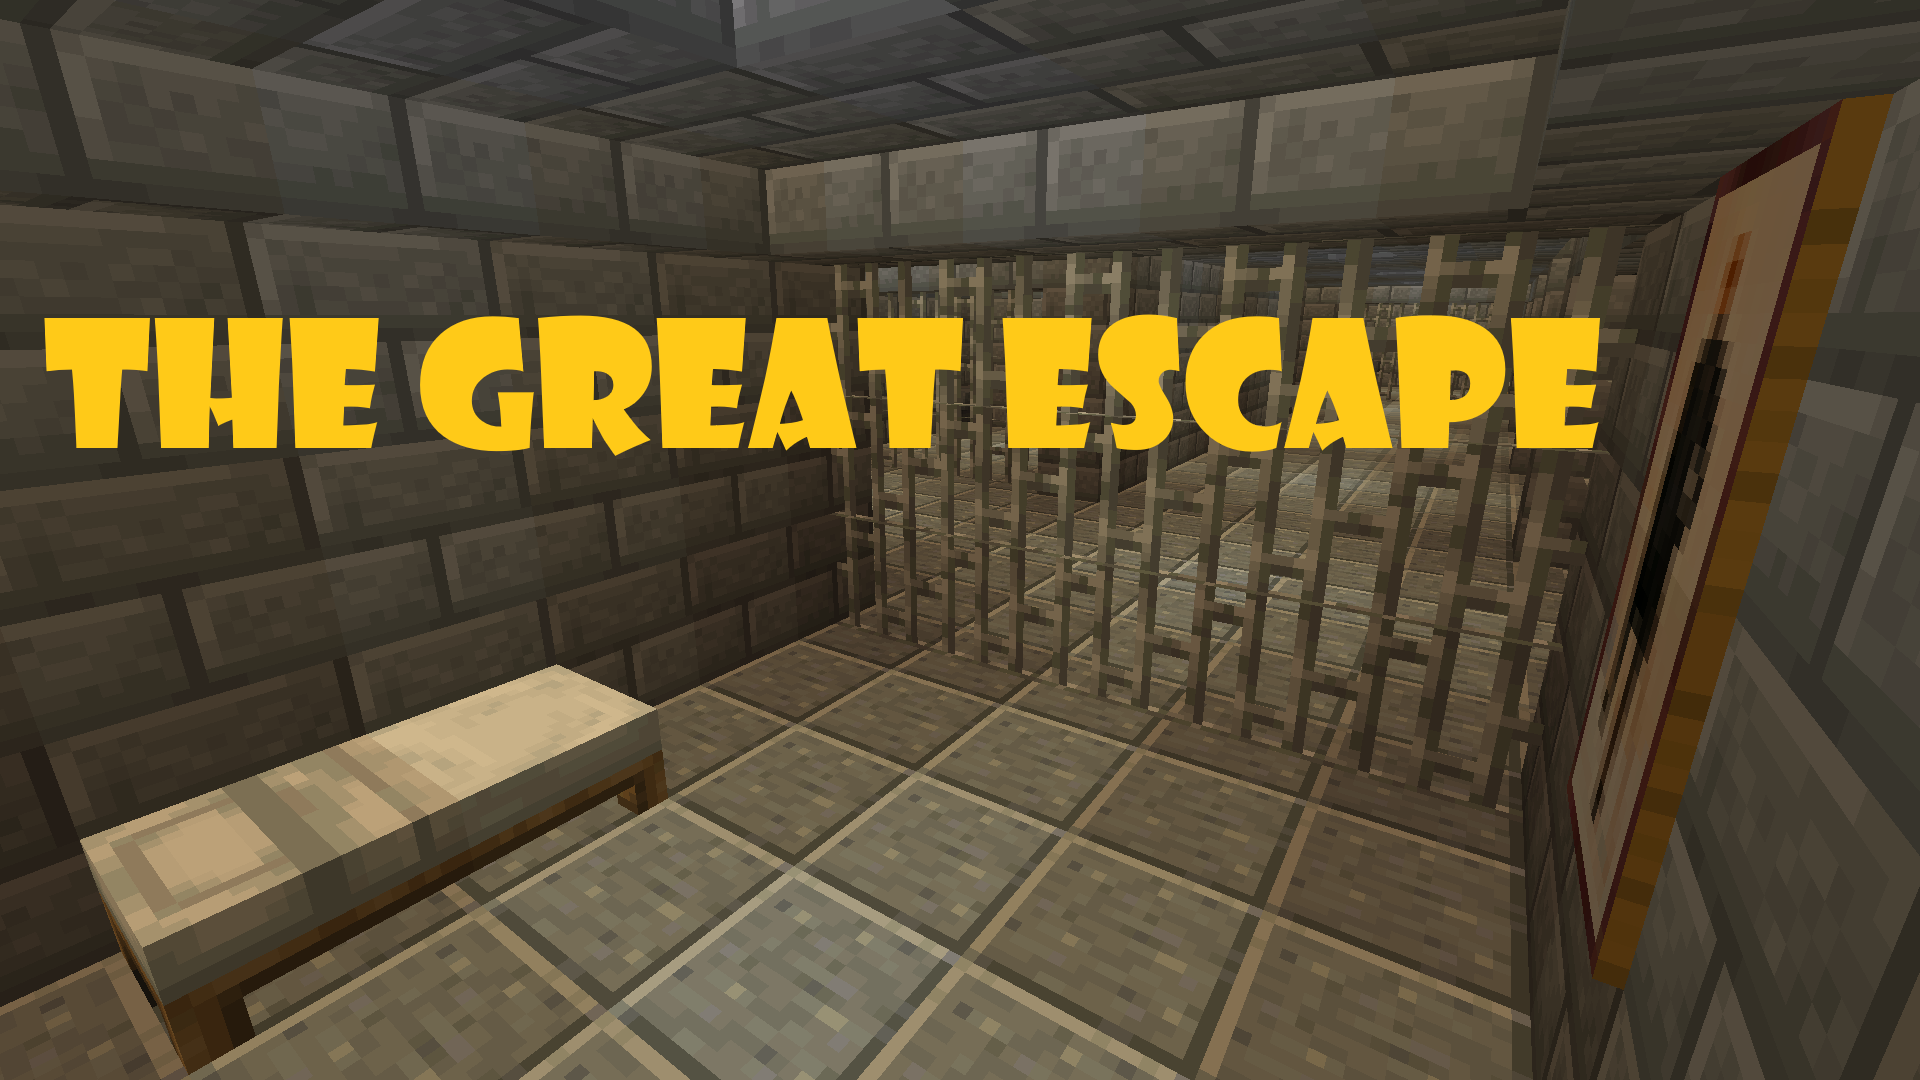 Download THE GREAT ESCAPE! for Minecraft 1.14.4